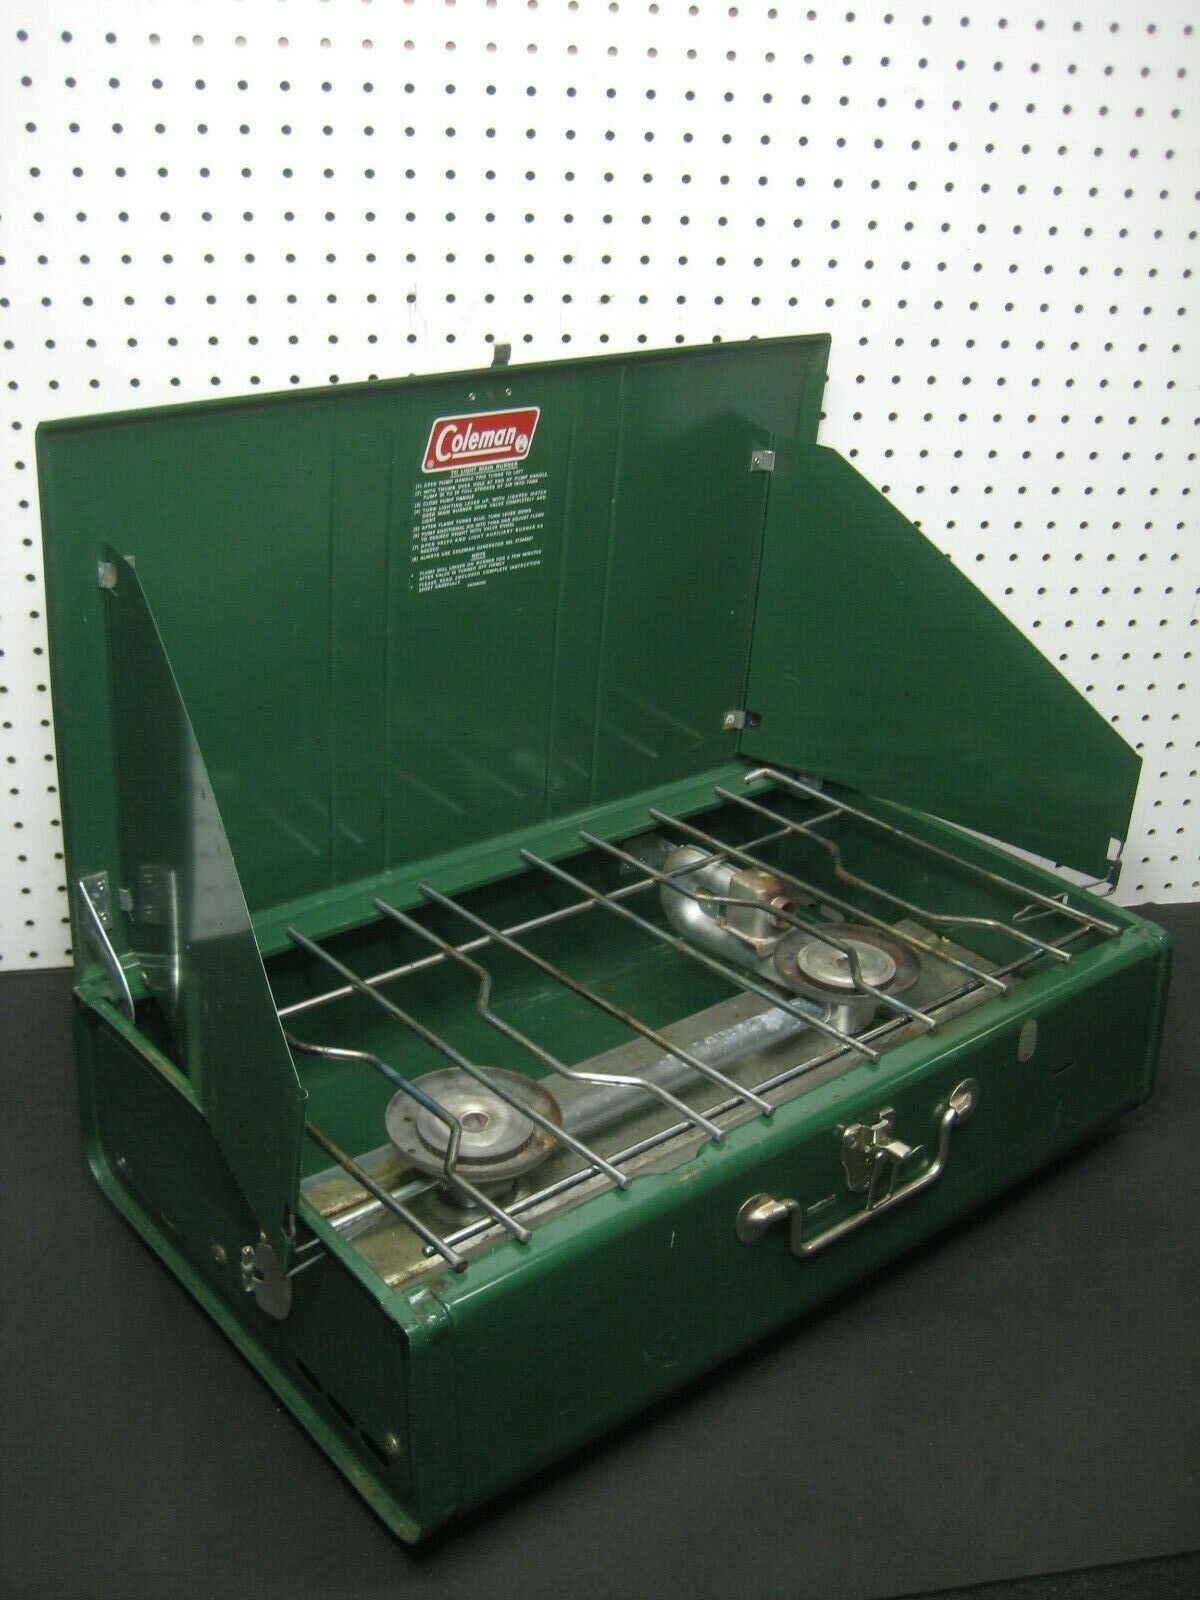 Vintage 1980 Coleman  413G Large Double Burner Stove Mfg. Date 3   79 - USA READ  leisure